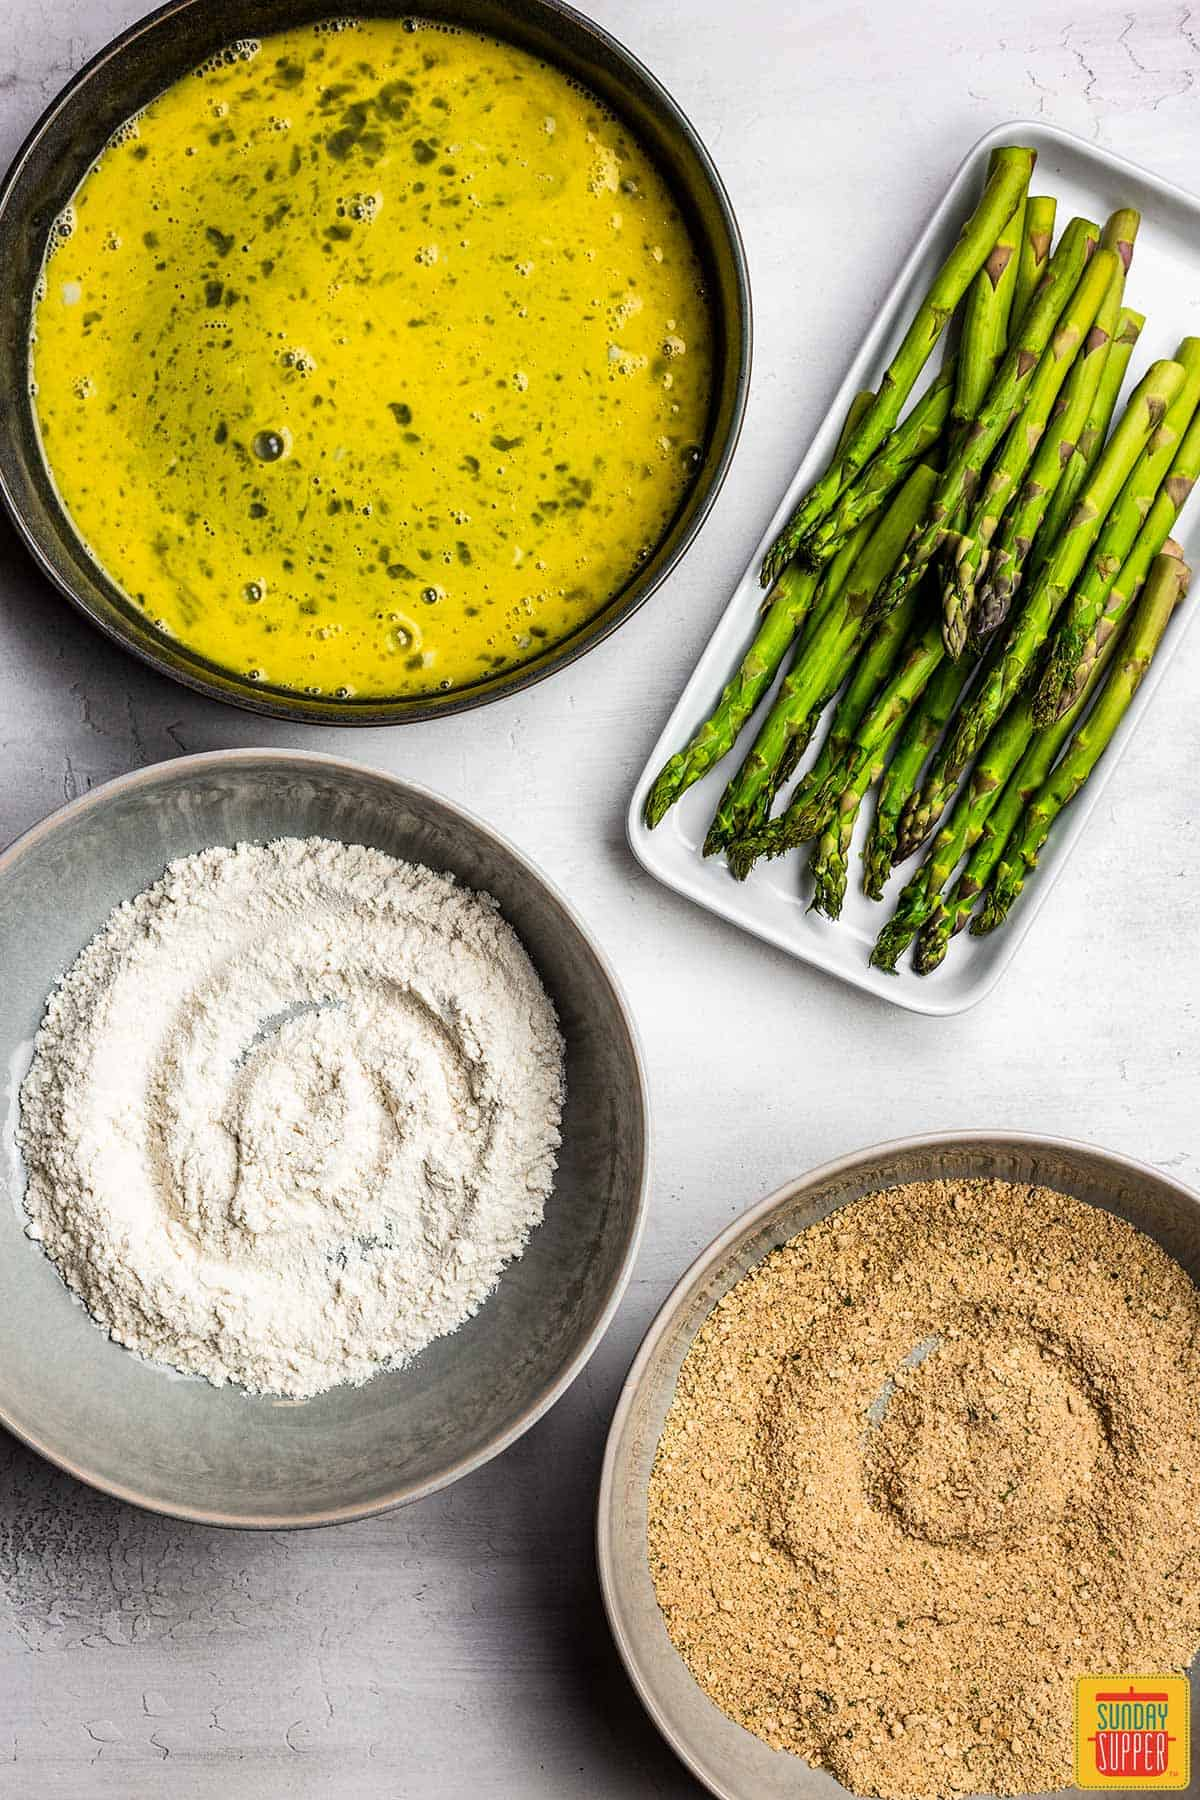 Ingredients for air fryer asparagus